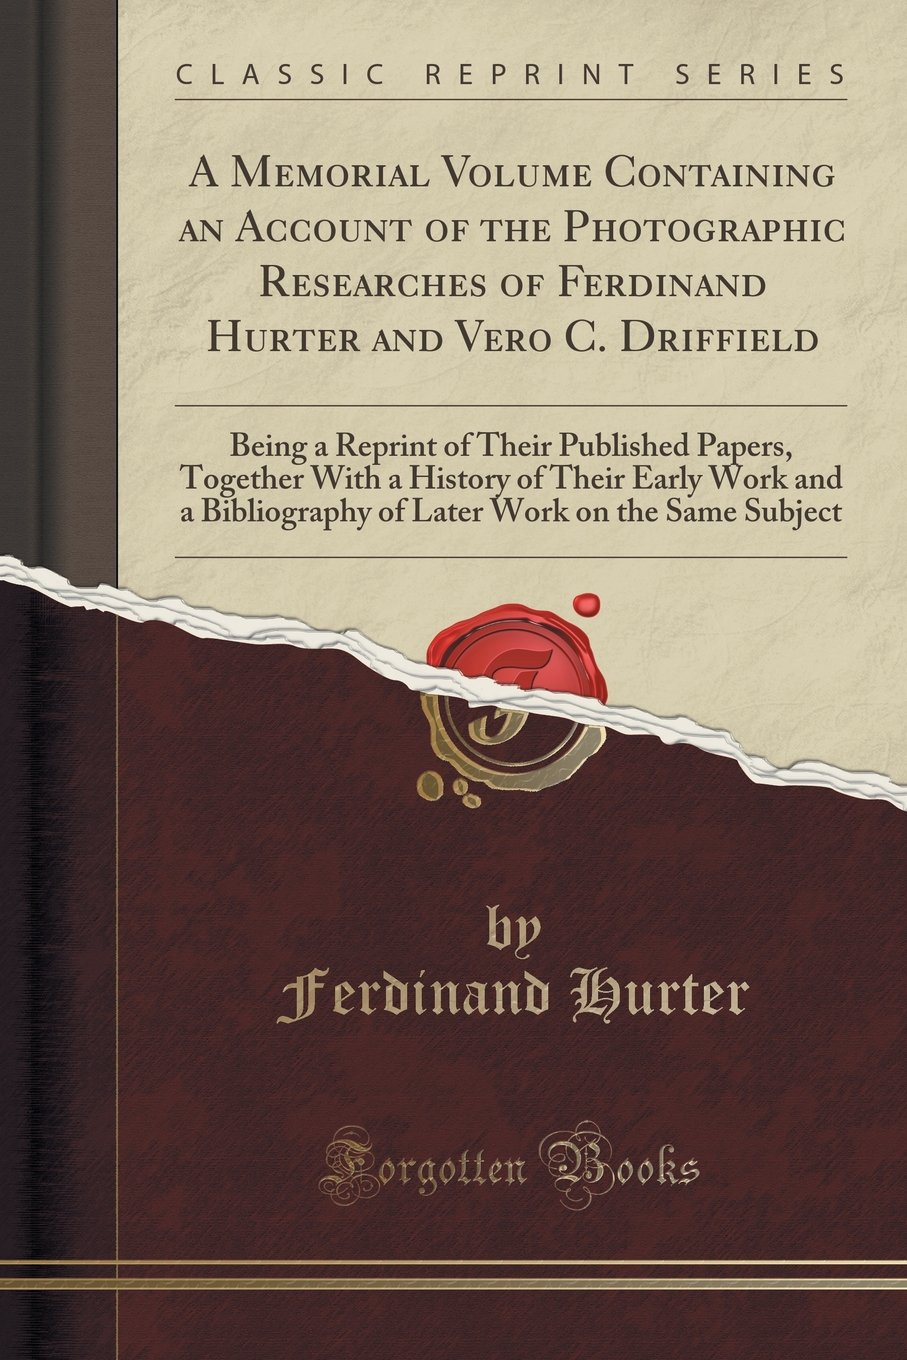 A Memorial Volume Containing an Account of the Photographic Researches of Ferdinand Hurter and Vero C. Driffield: Being a Reprint of Their Published ... of Later Work on the Same Subject